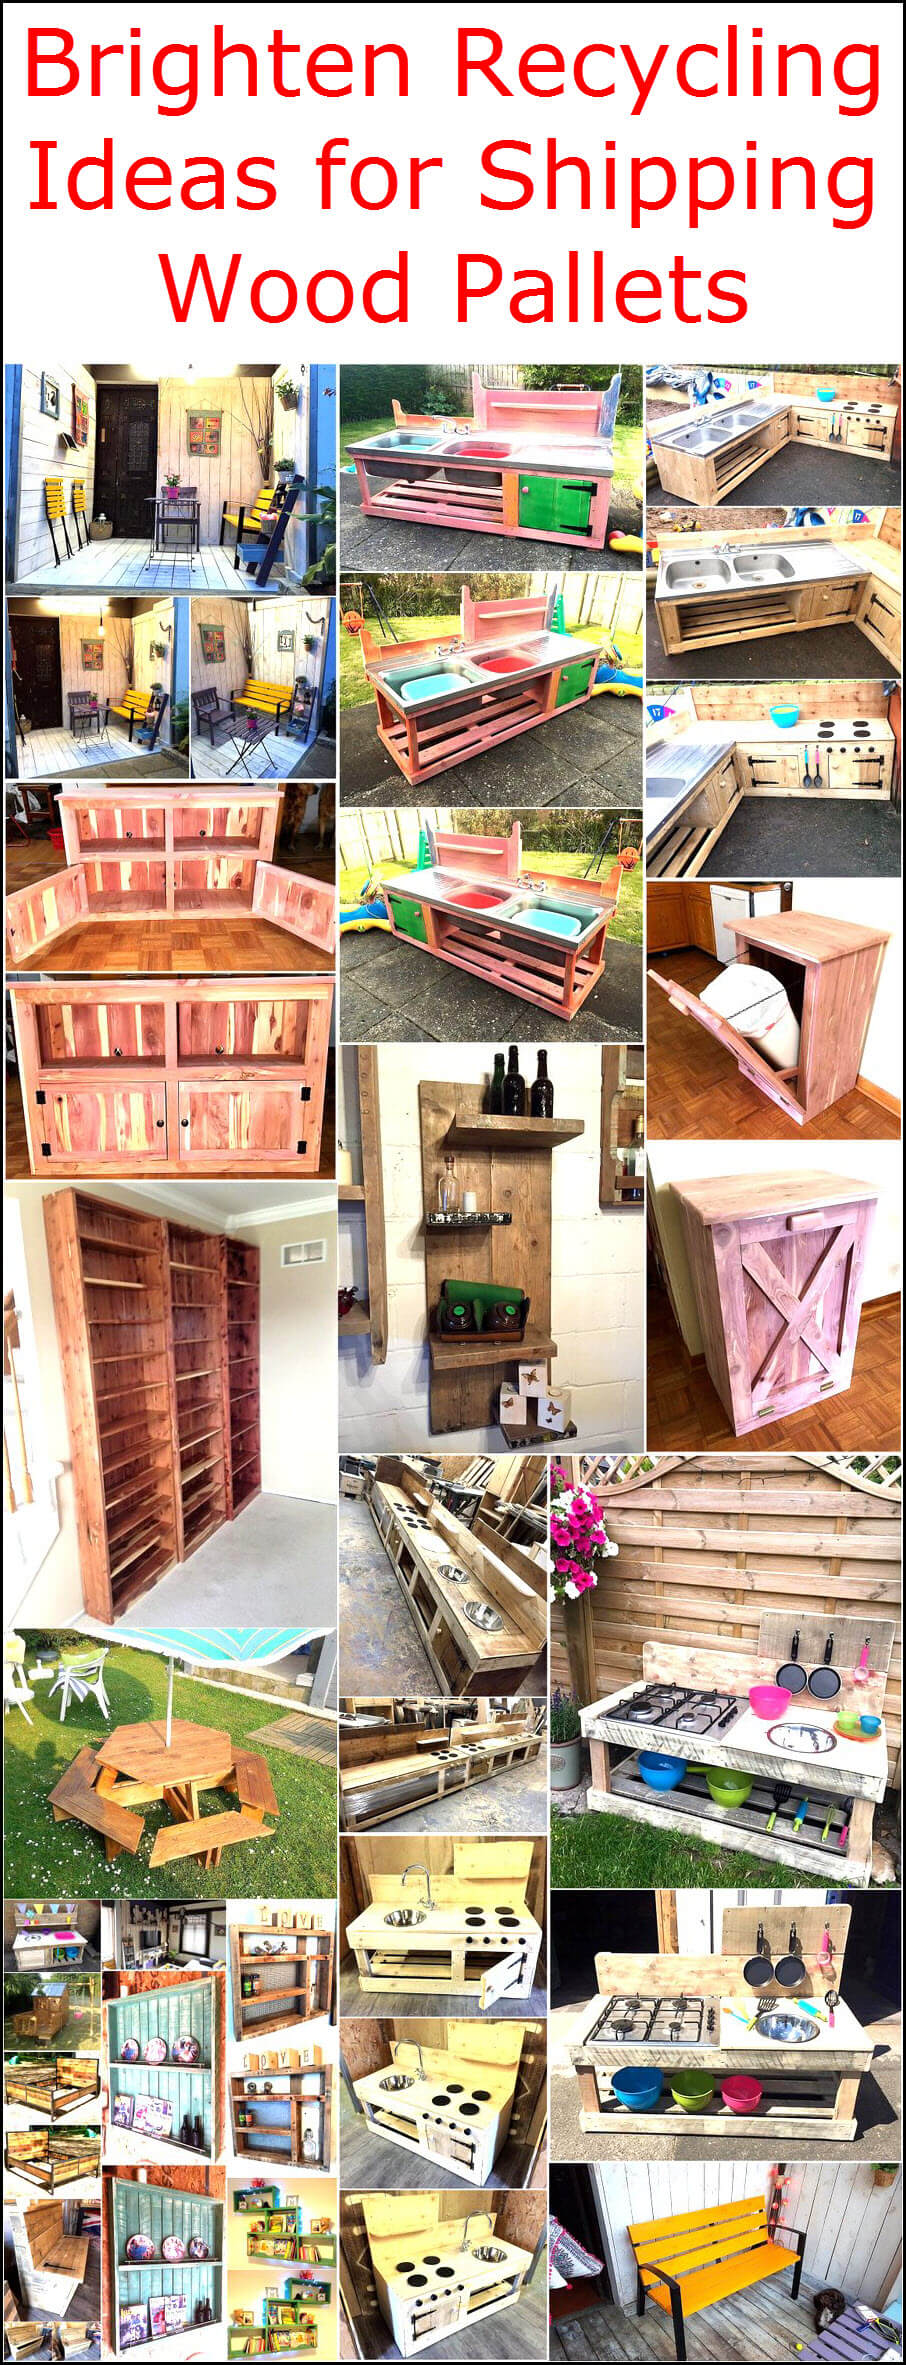 Brighten Recycling Ideas for Shipping Wood Pallets